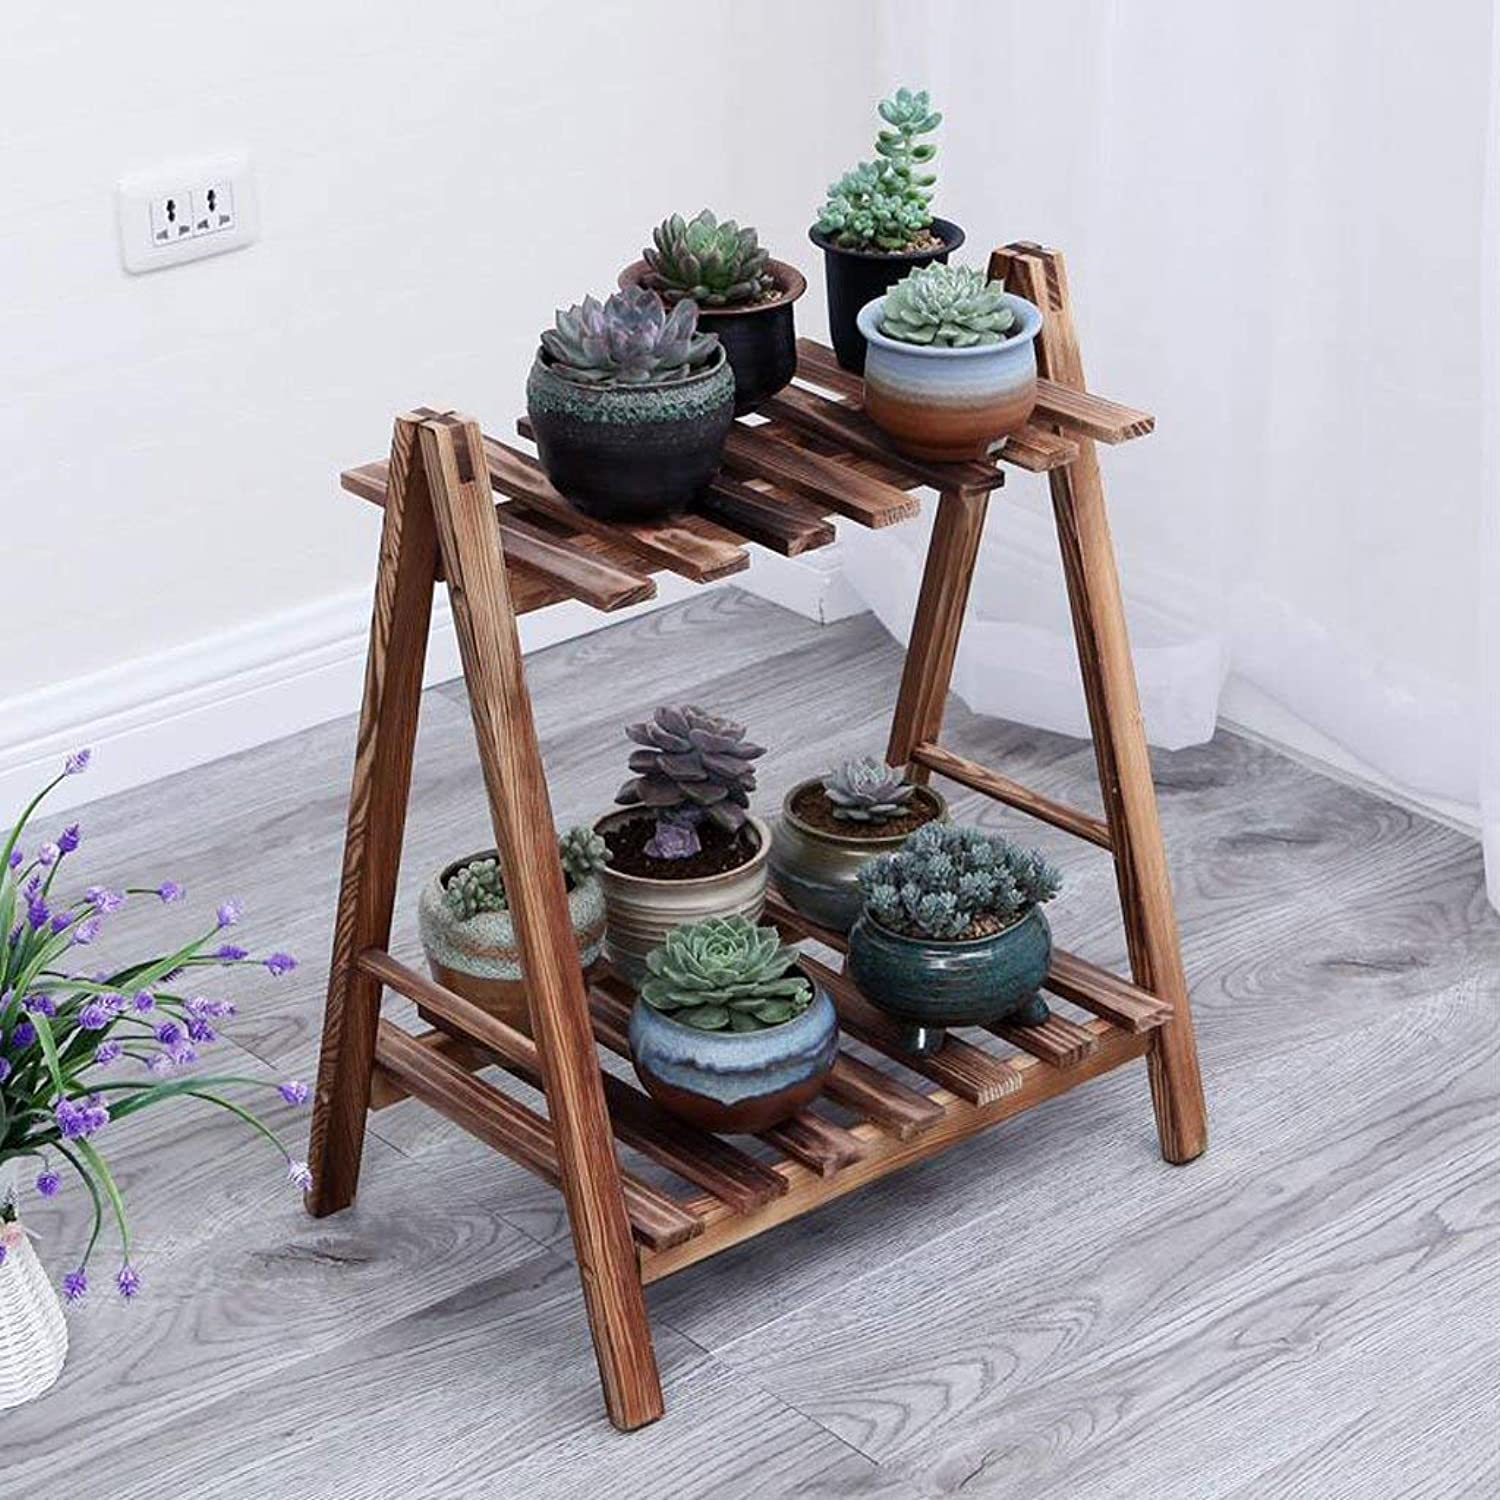 Gifts & Decor Plant Stand Shelf Flower Racks Solid Wood Flower Stand Plant Stand Indoor Balcony Flower Stand Multi-Layer Floor Shelf Three-Dimensional Flower Stand (color   Brown, Size   Small)